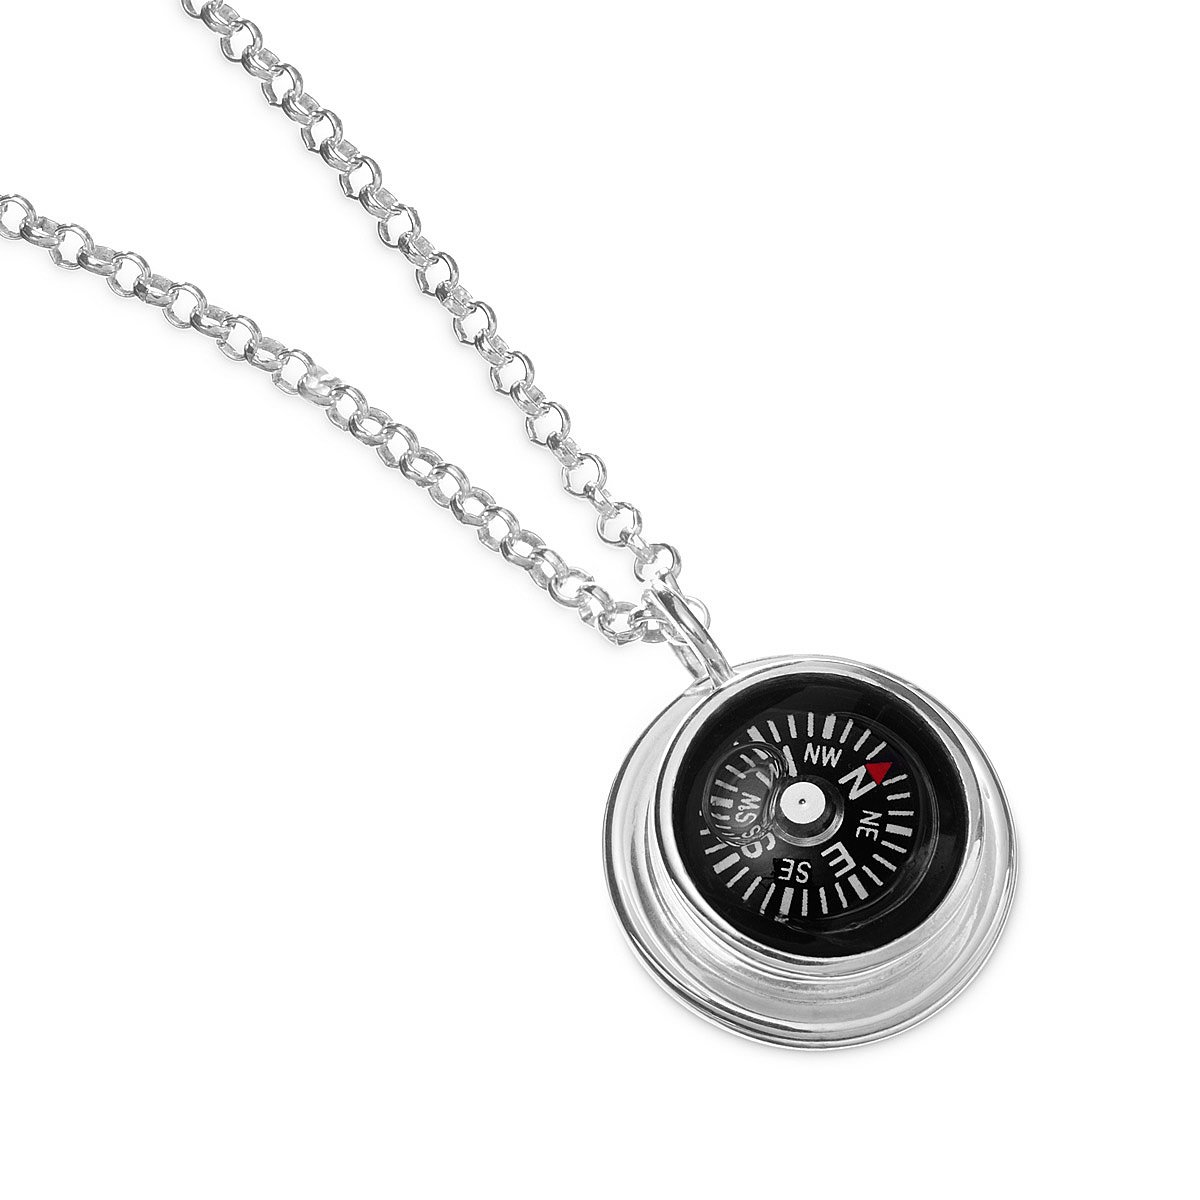 compassnecklace products creative compass epicene copy necklace